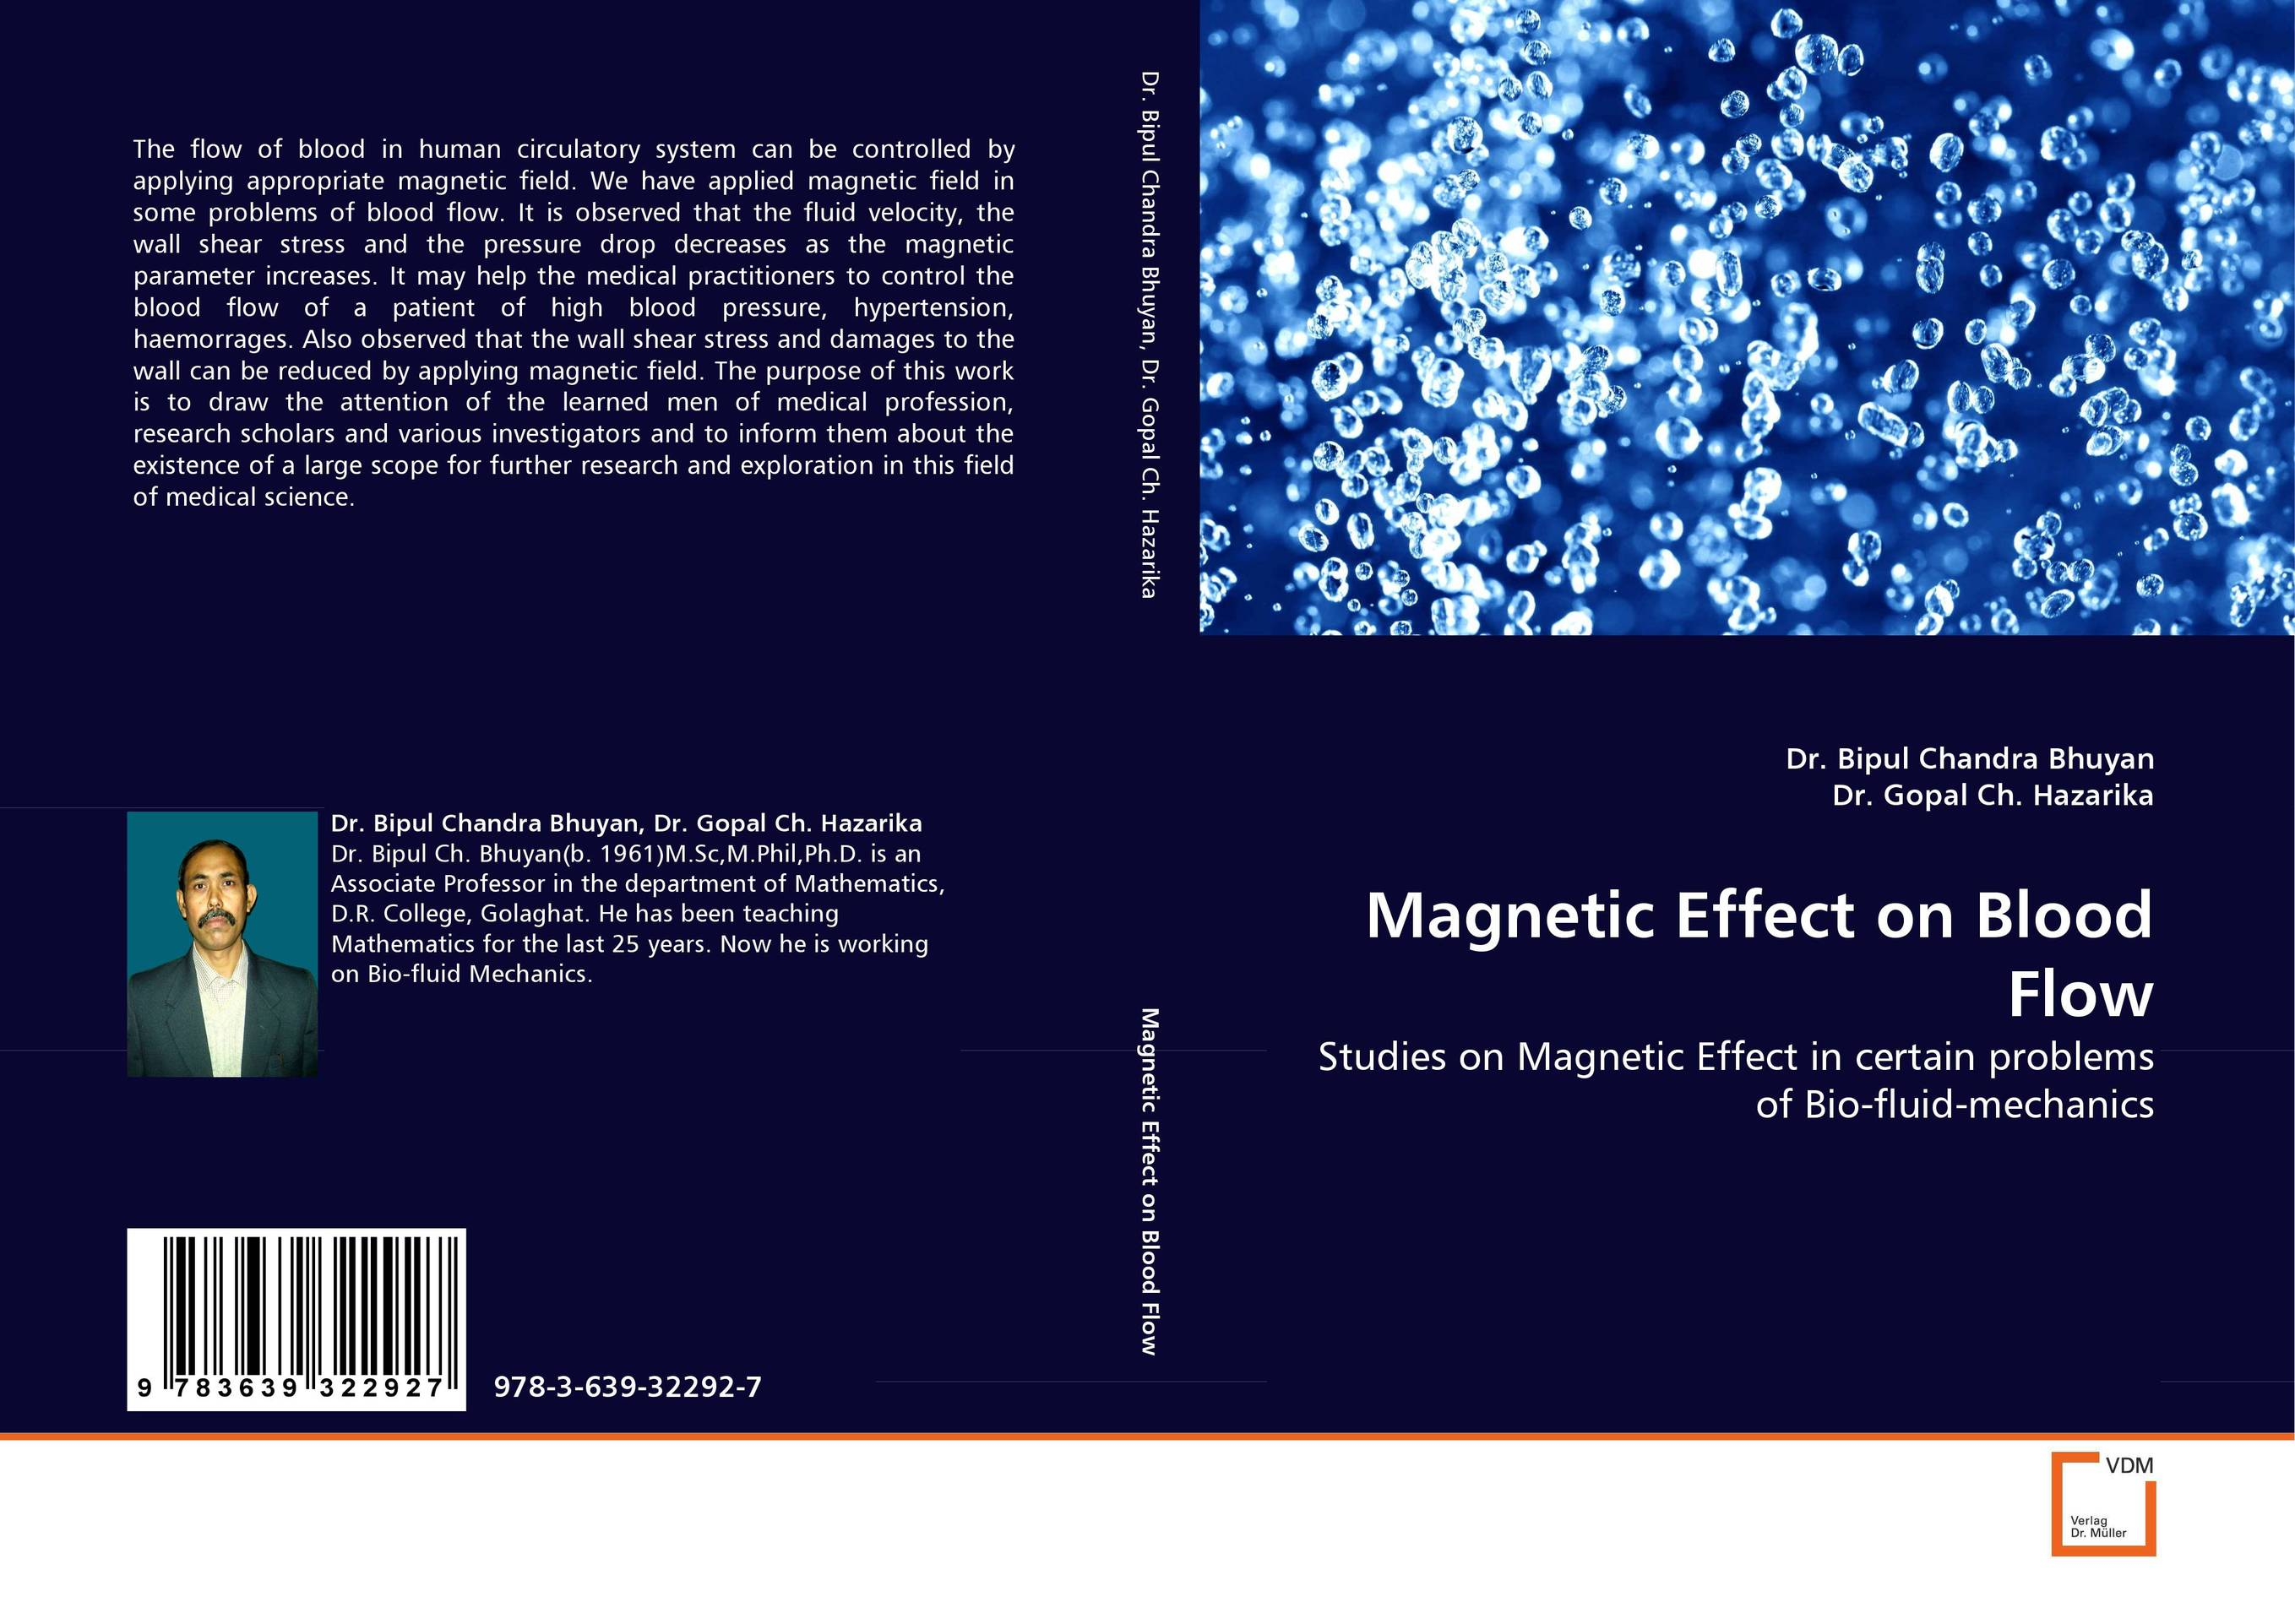 Magnetic Effect on Blood Flow